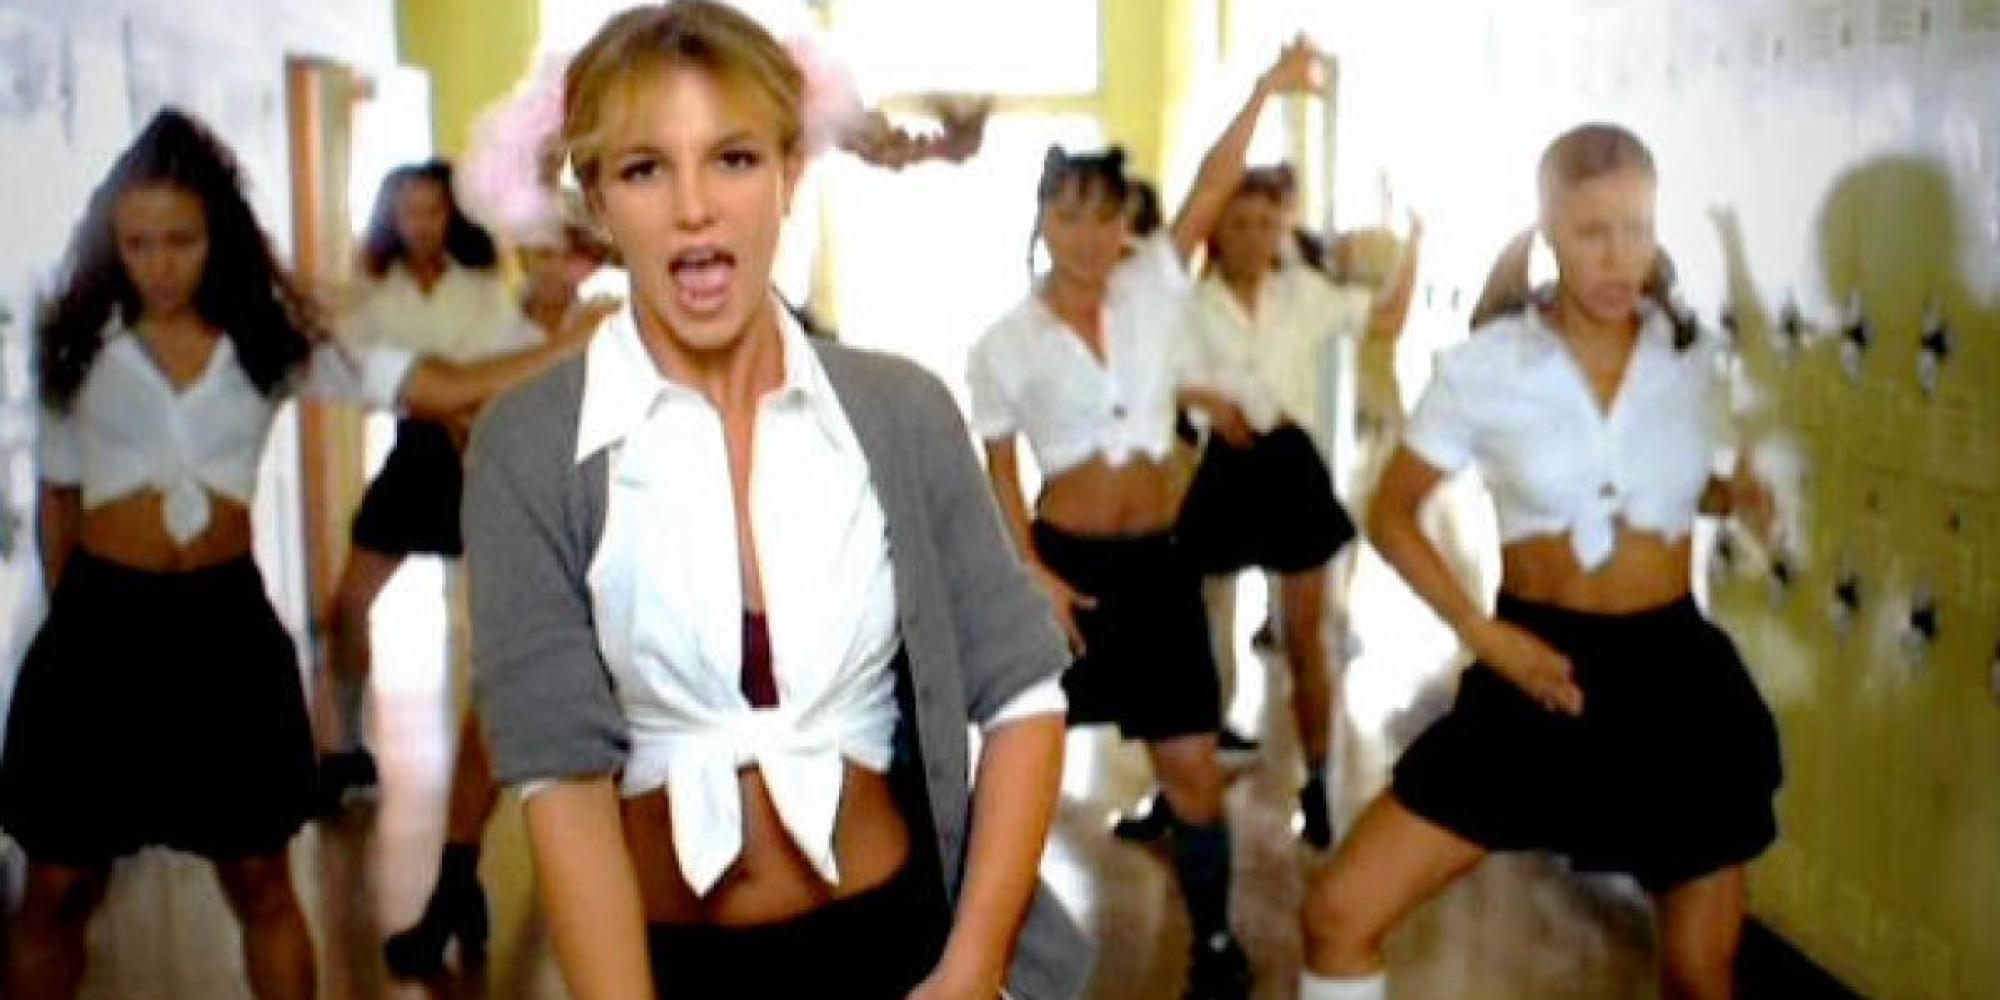 Britney Spears Baby One More Time Music Cd: How Britney Spears, 'Clueless' And Pop Culture Changed The